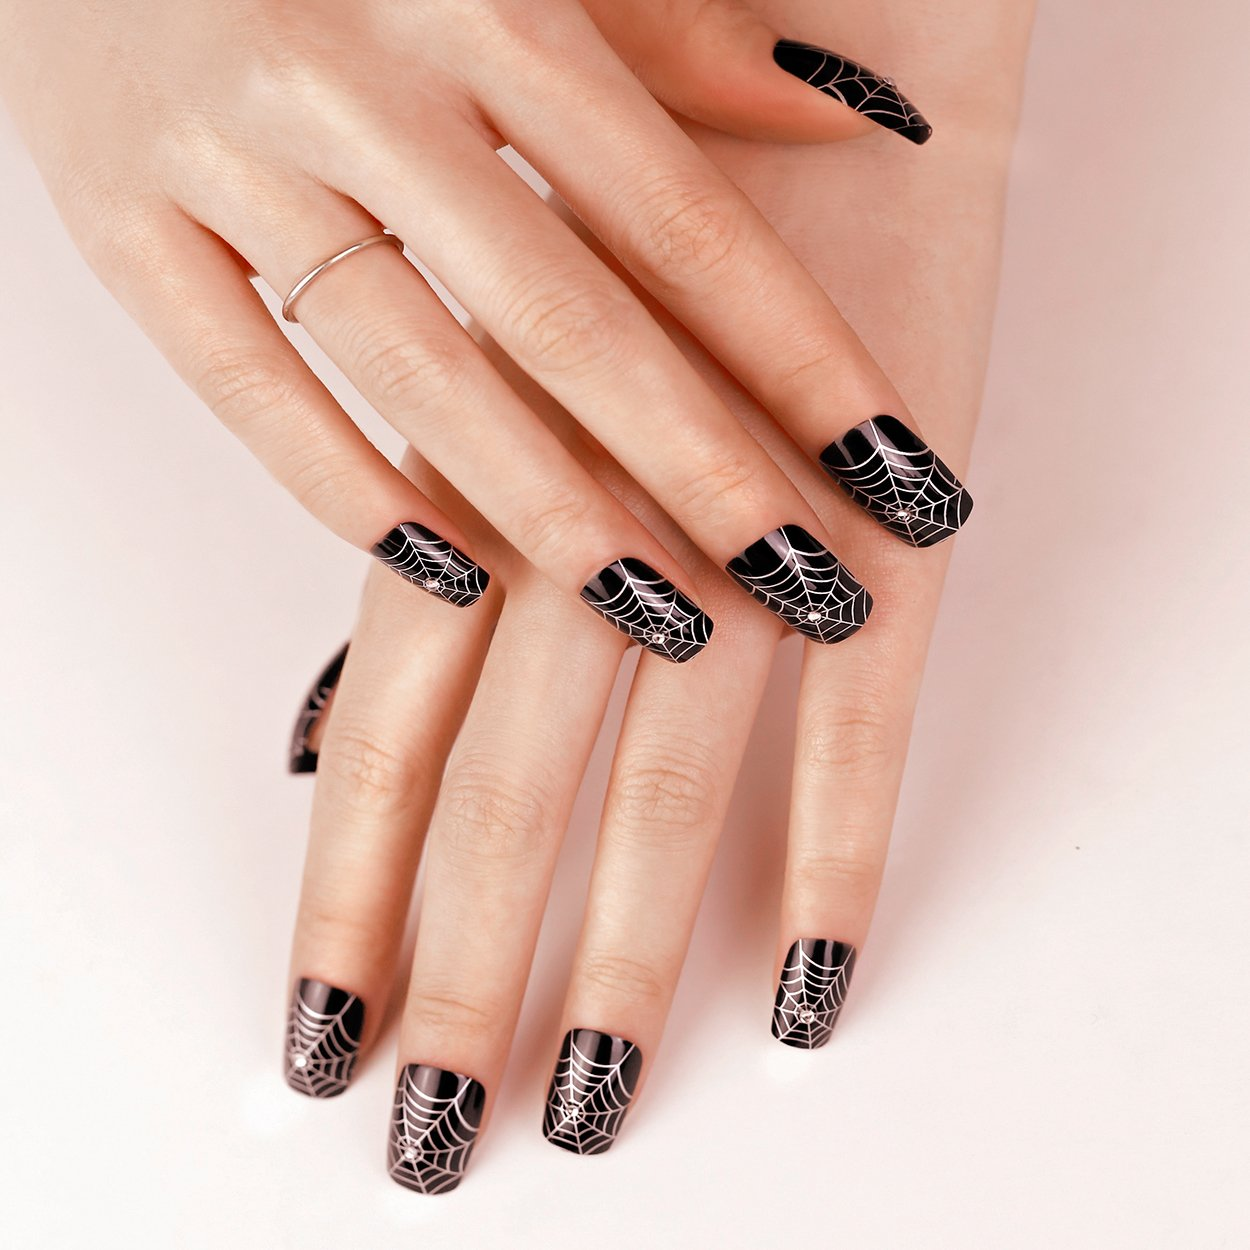 ArtPlus Uñas postizas 24pcs Gothic Black Silver with Crystals False Nails French Manicure Full Cover Long Length with Glue Fake Nails: Amazon.es: Belleza